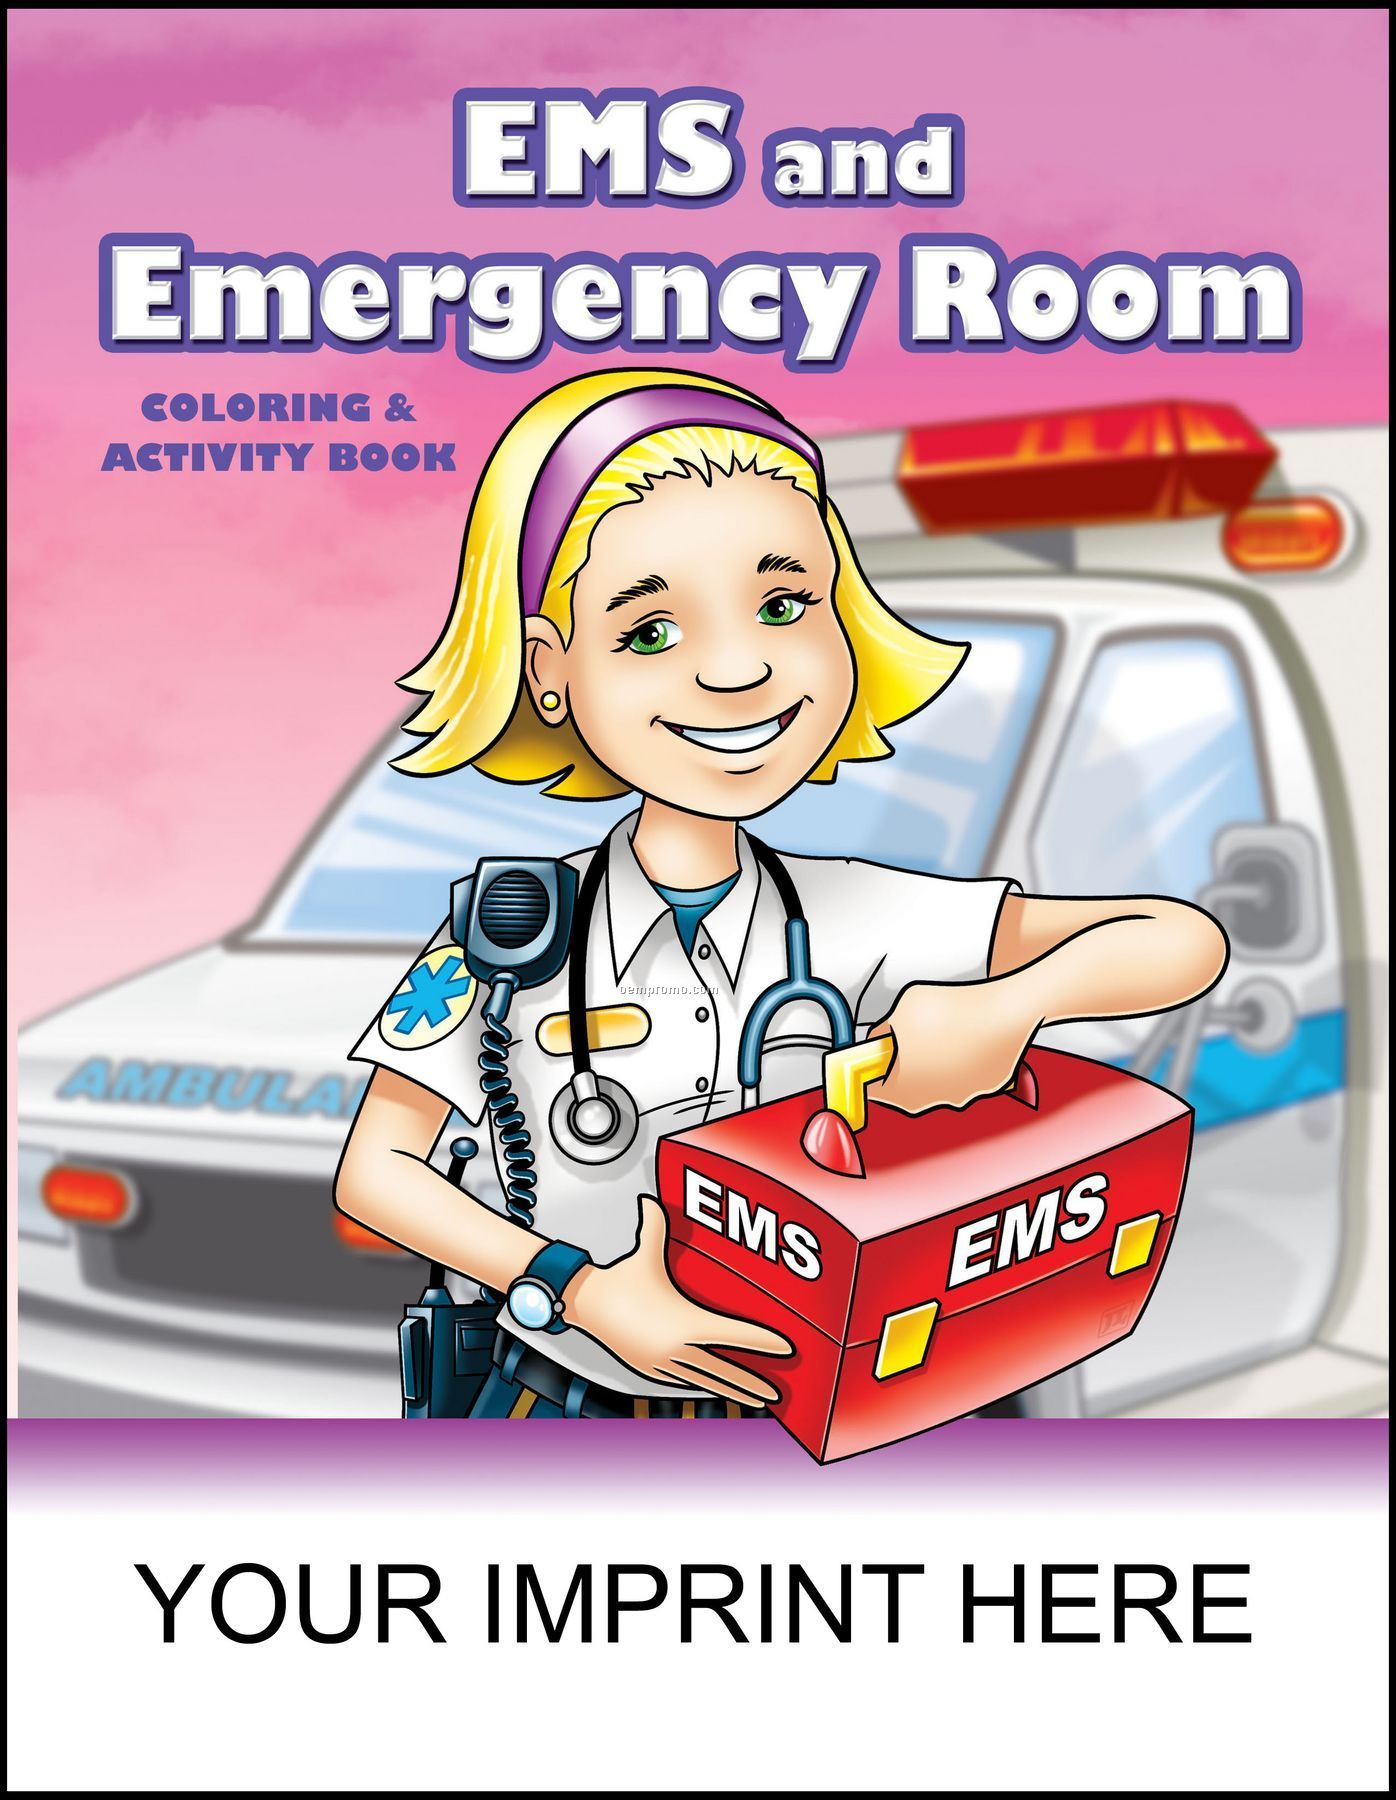 Ems And Emergency Room Coloring & Activity Book